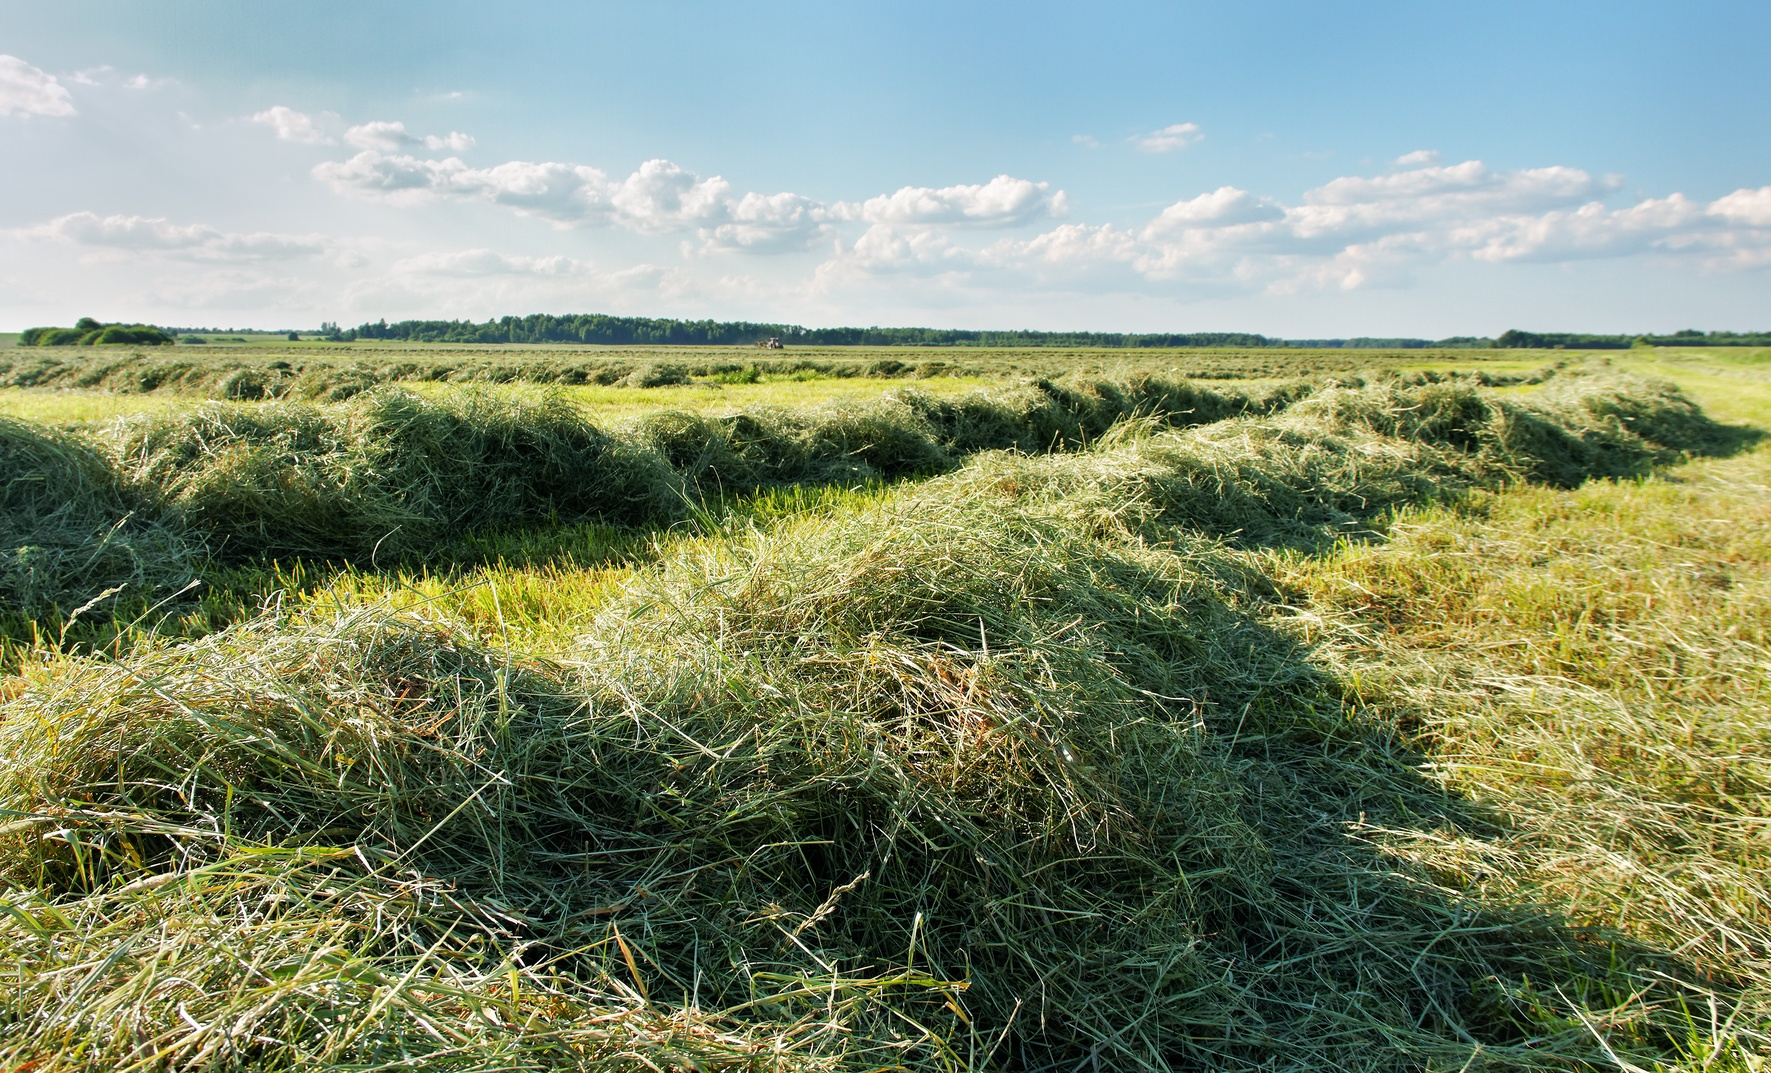 measuring moisture in fresh-cut hay in the windrow is very different from measuring moisture in a bale.